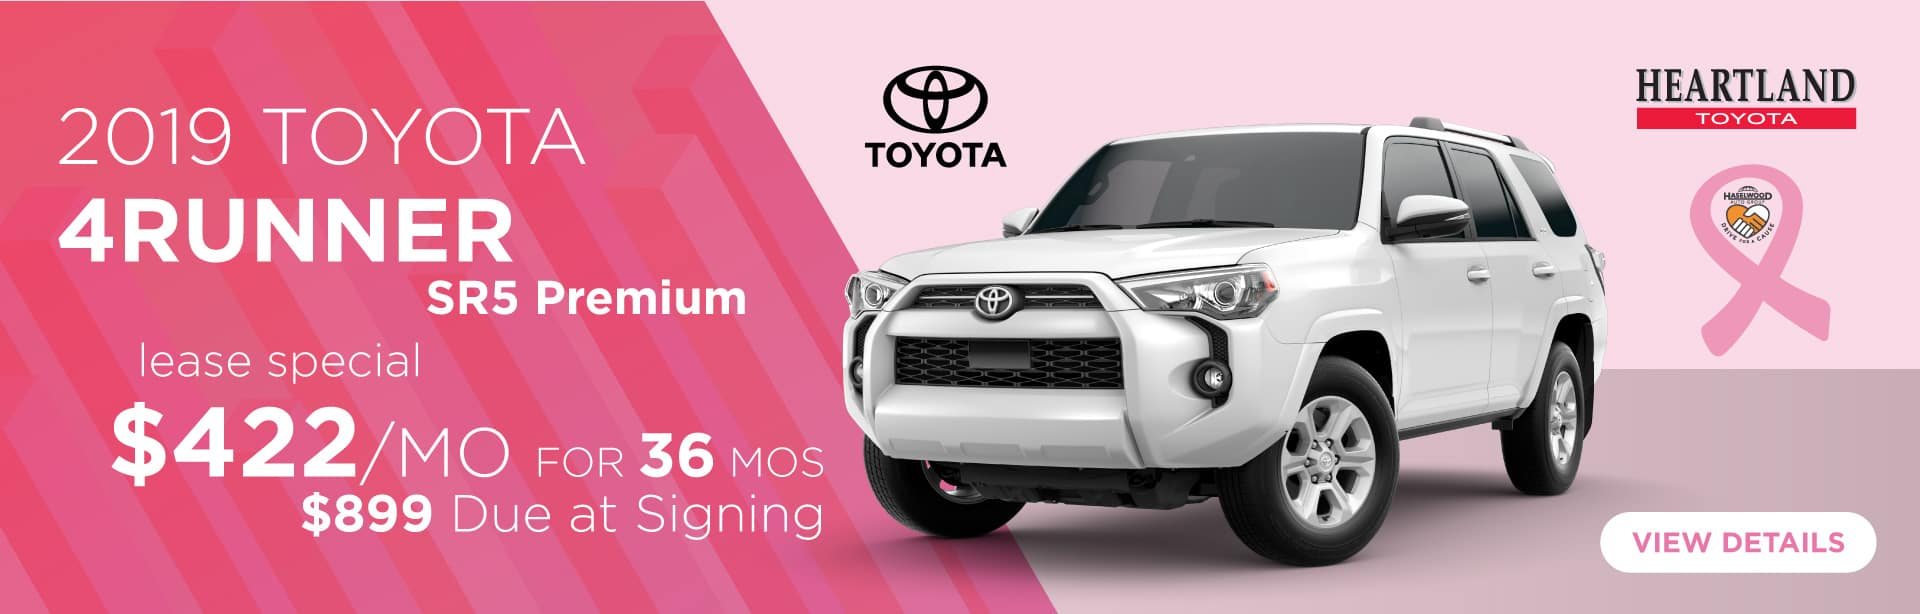 2019 Toyota 4Runner SR5 Premium $422/mo for 36 months* $899 Due at Signing    *Offer valid on 2019 Toyota 4Runner SR5 Premium. $422 per month for 36 months. Lease with $899 due at signing; includes a $695 acquisition fee. Valid on VIN: JTEBU5JR2K5726869, JTEBU5JR6K5723005, JTEBU5JRXK5708801. MSRP $40,210. Lease is through TFS. Subject to credit approval. No Security deposit required. Excludes taxes, title, and fees. 36 monthly payments required. Not all lessees will qualify for lowest payment through participating lender. Residency restrictions apply. Lessee responsible for mileage over 10,000 miles per year at $0.15/mile per year. Option to purchase at lease end. A negotiable dealer documentary service fee of up to $150 may be added to the sale price or capitalized cost. Offer expires 11/4/2019.